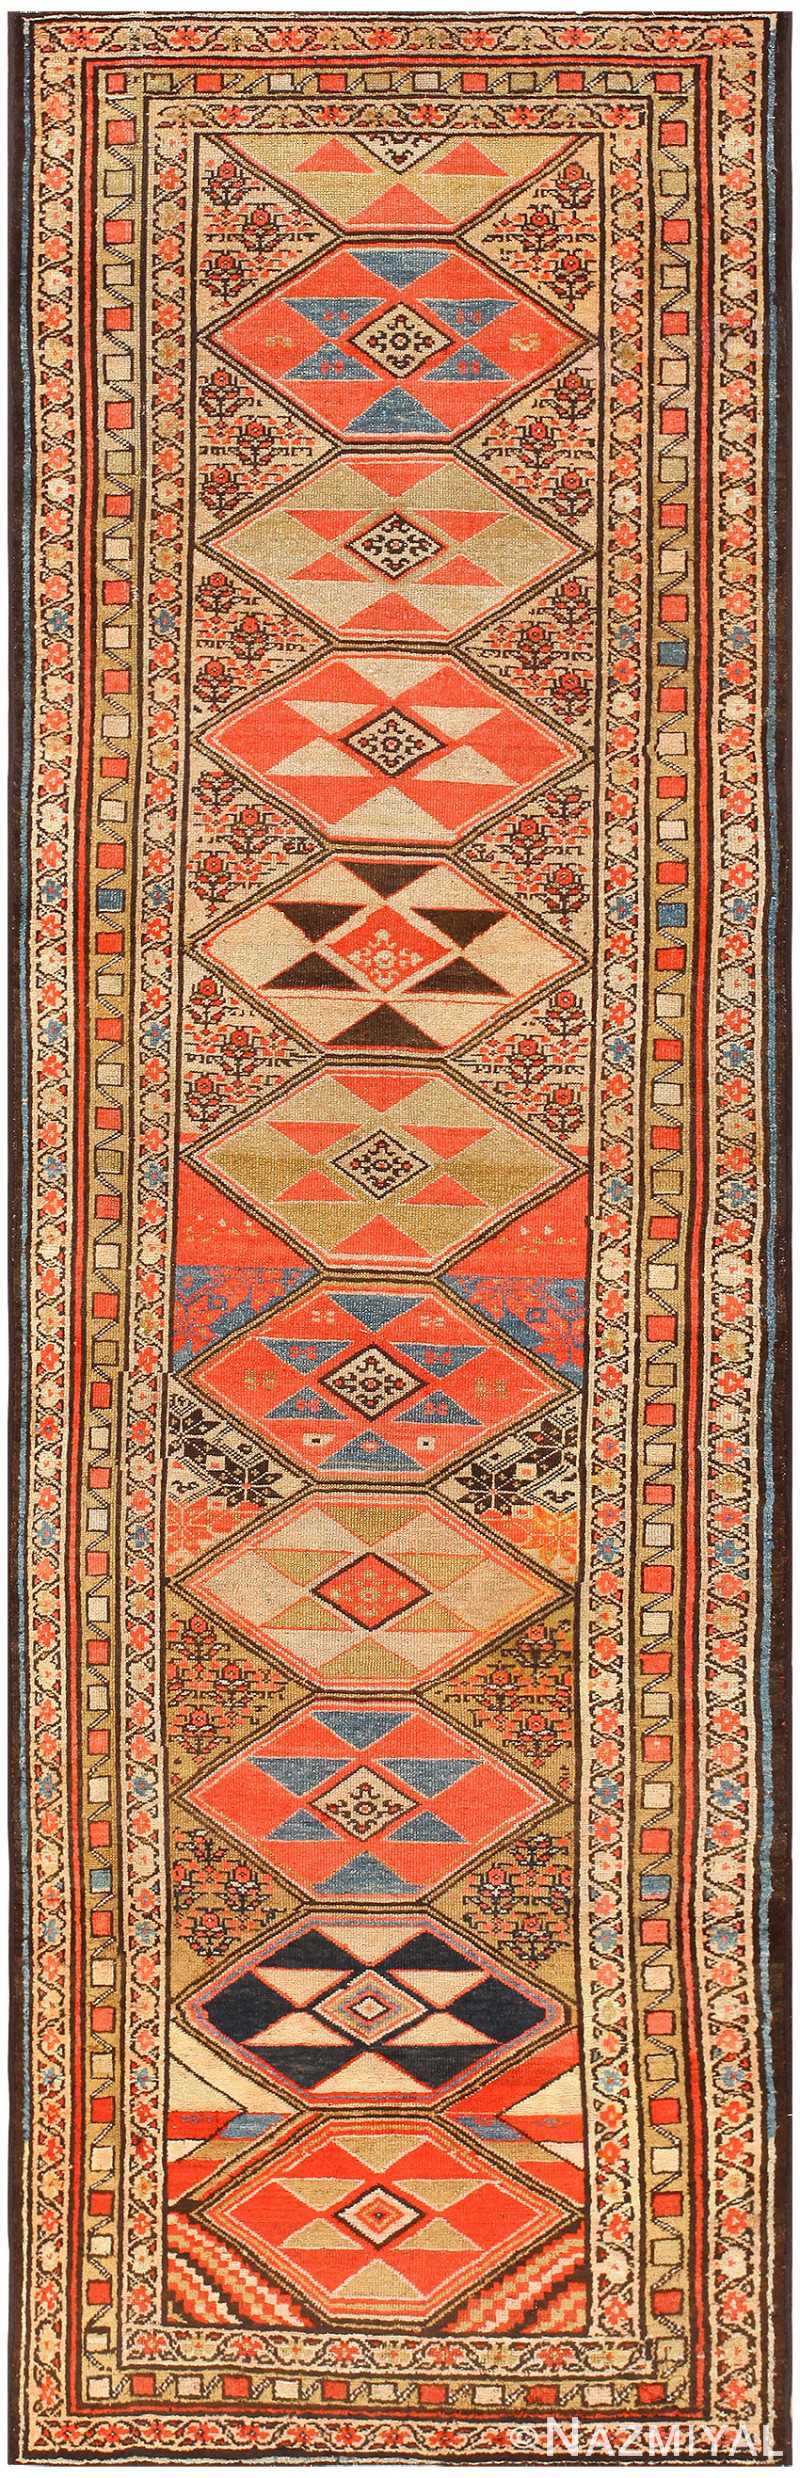 Antique Persian Malayer Runner Rug 48342 Detail/Large View